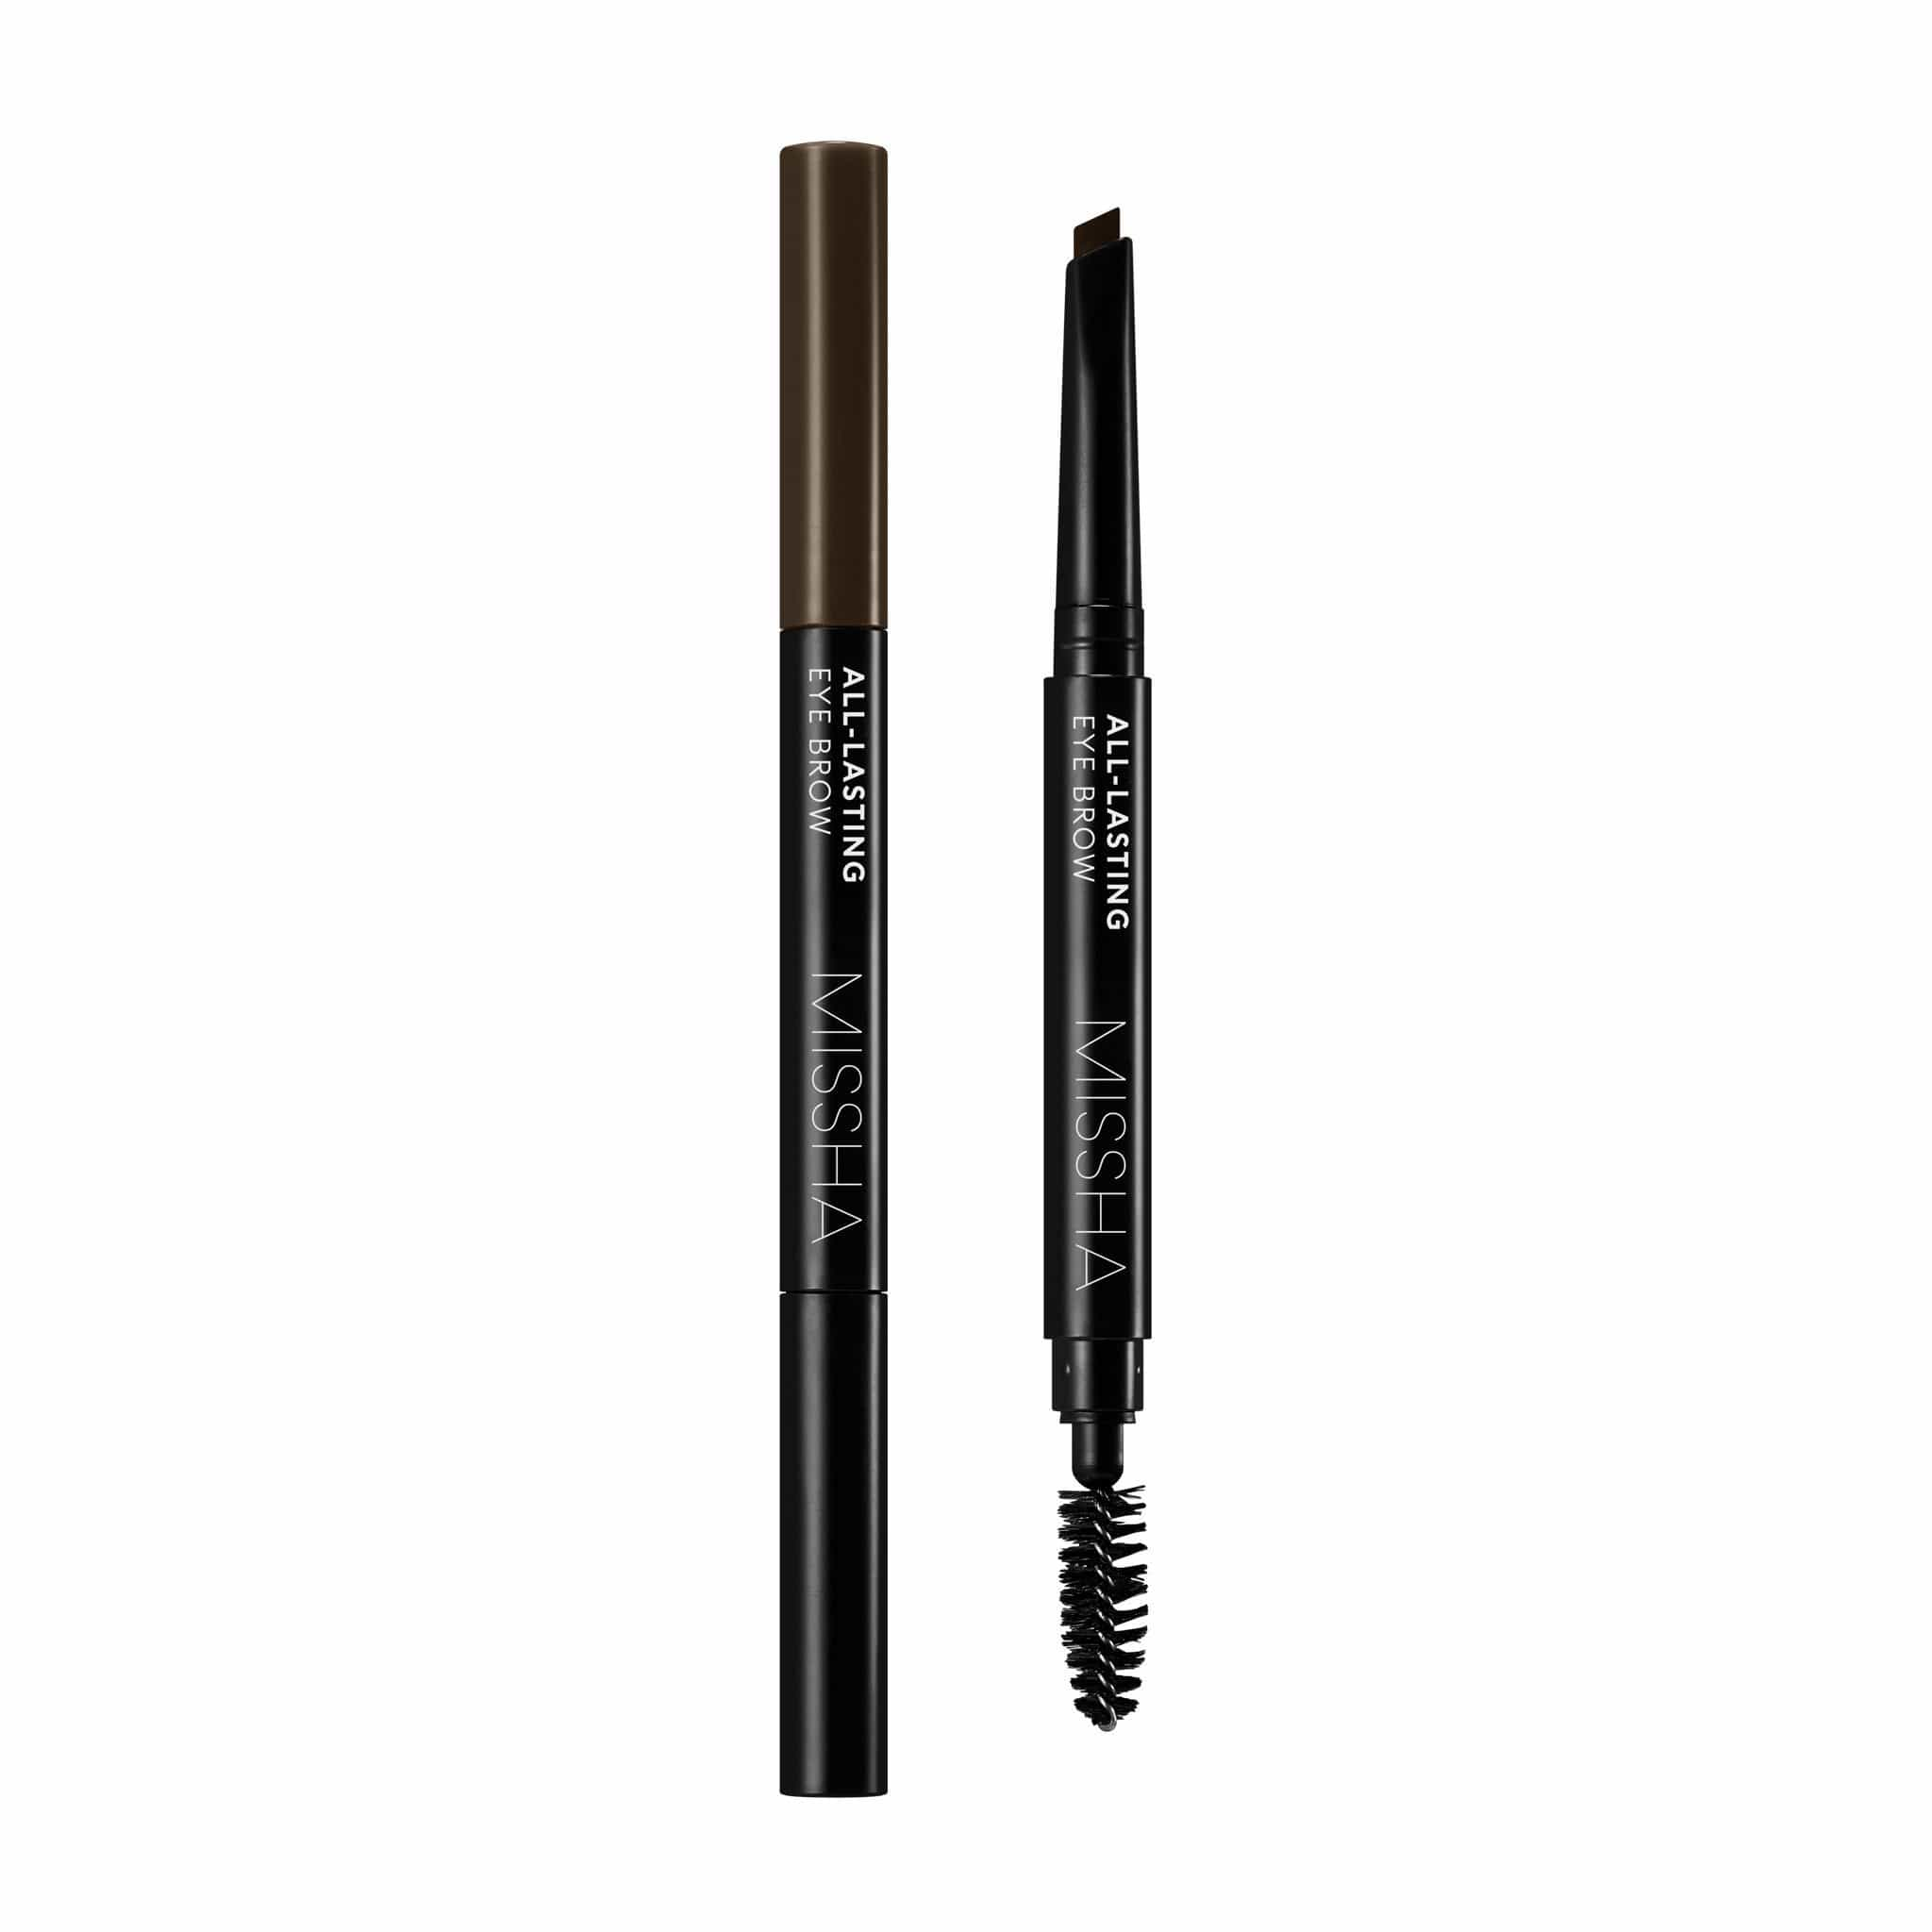 ALL-LASTING EYE BROW - MISSHA